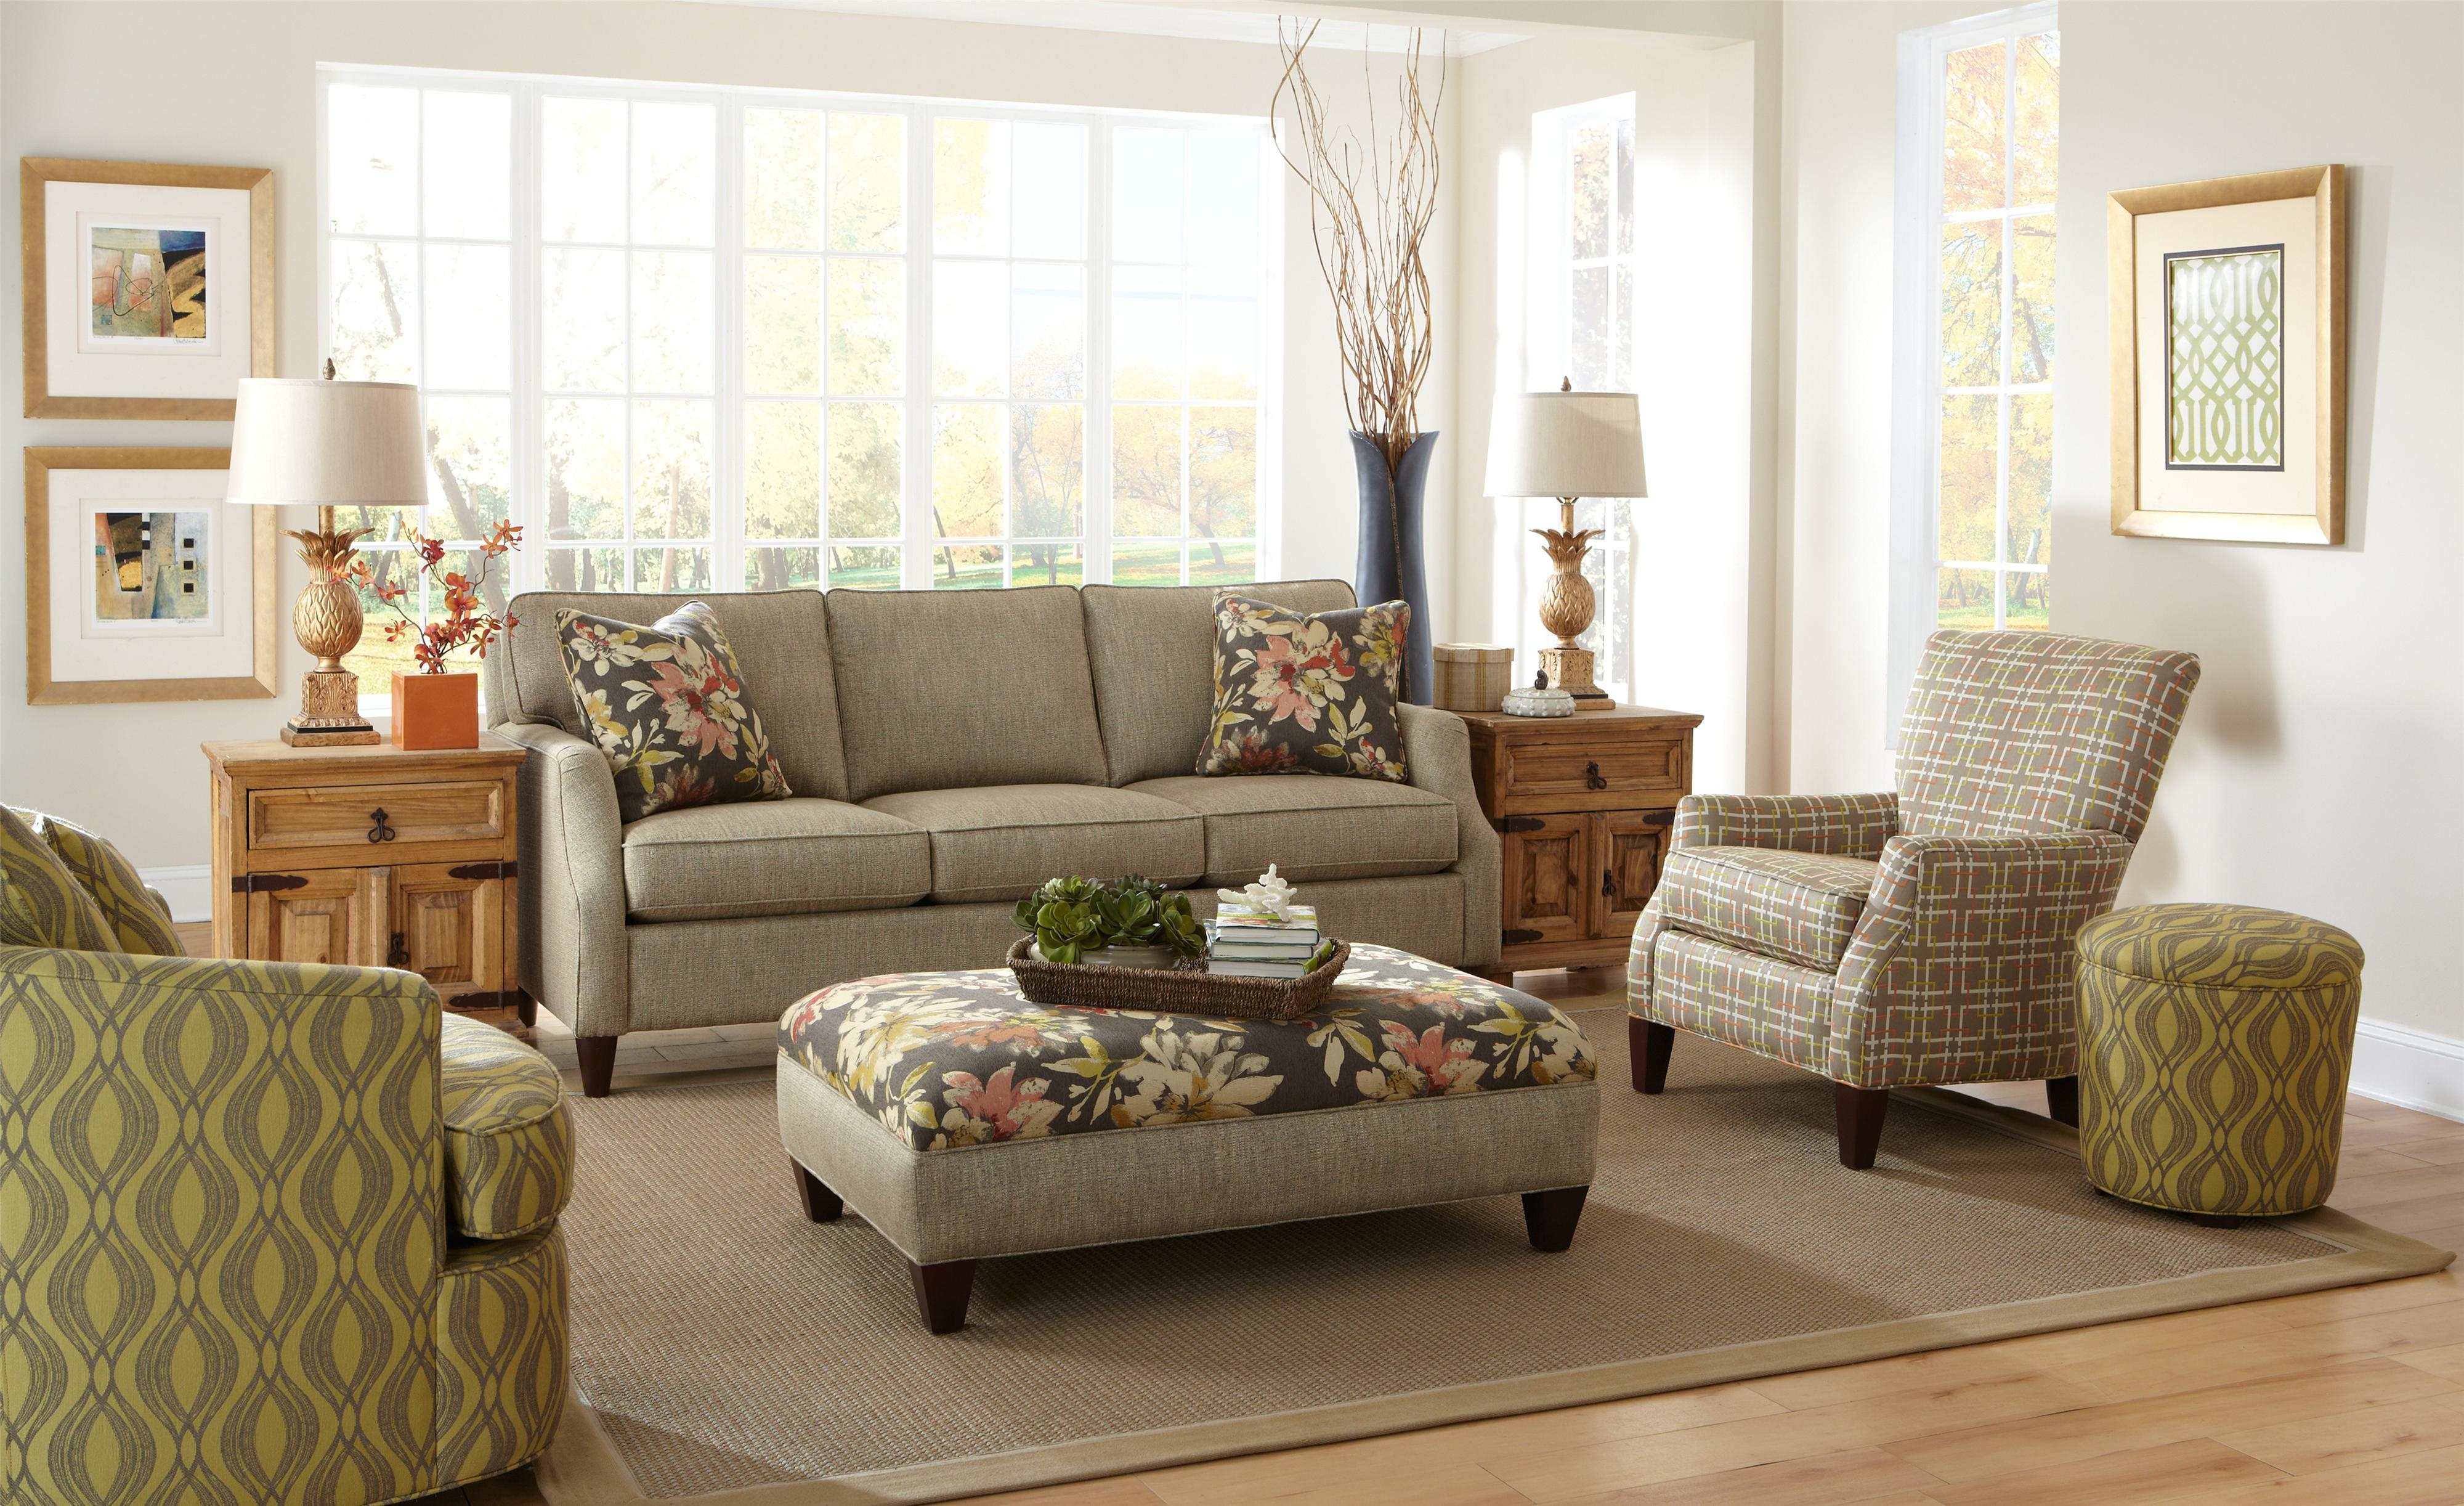 Craftmaster 736400 Stationary Living Room Group - Item Number: 736400 Living Room Group 1